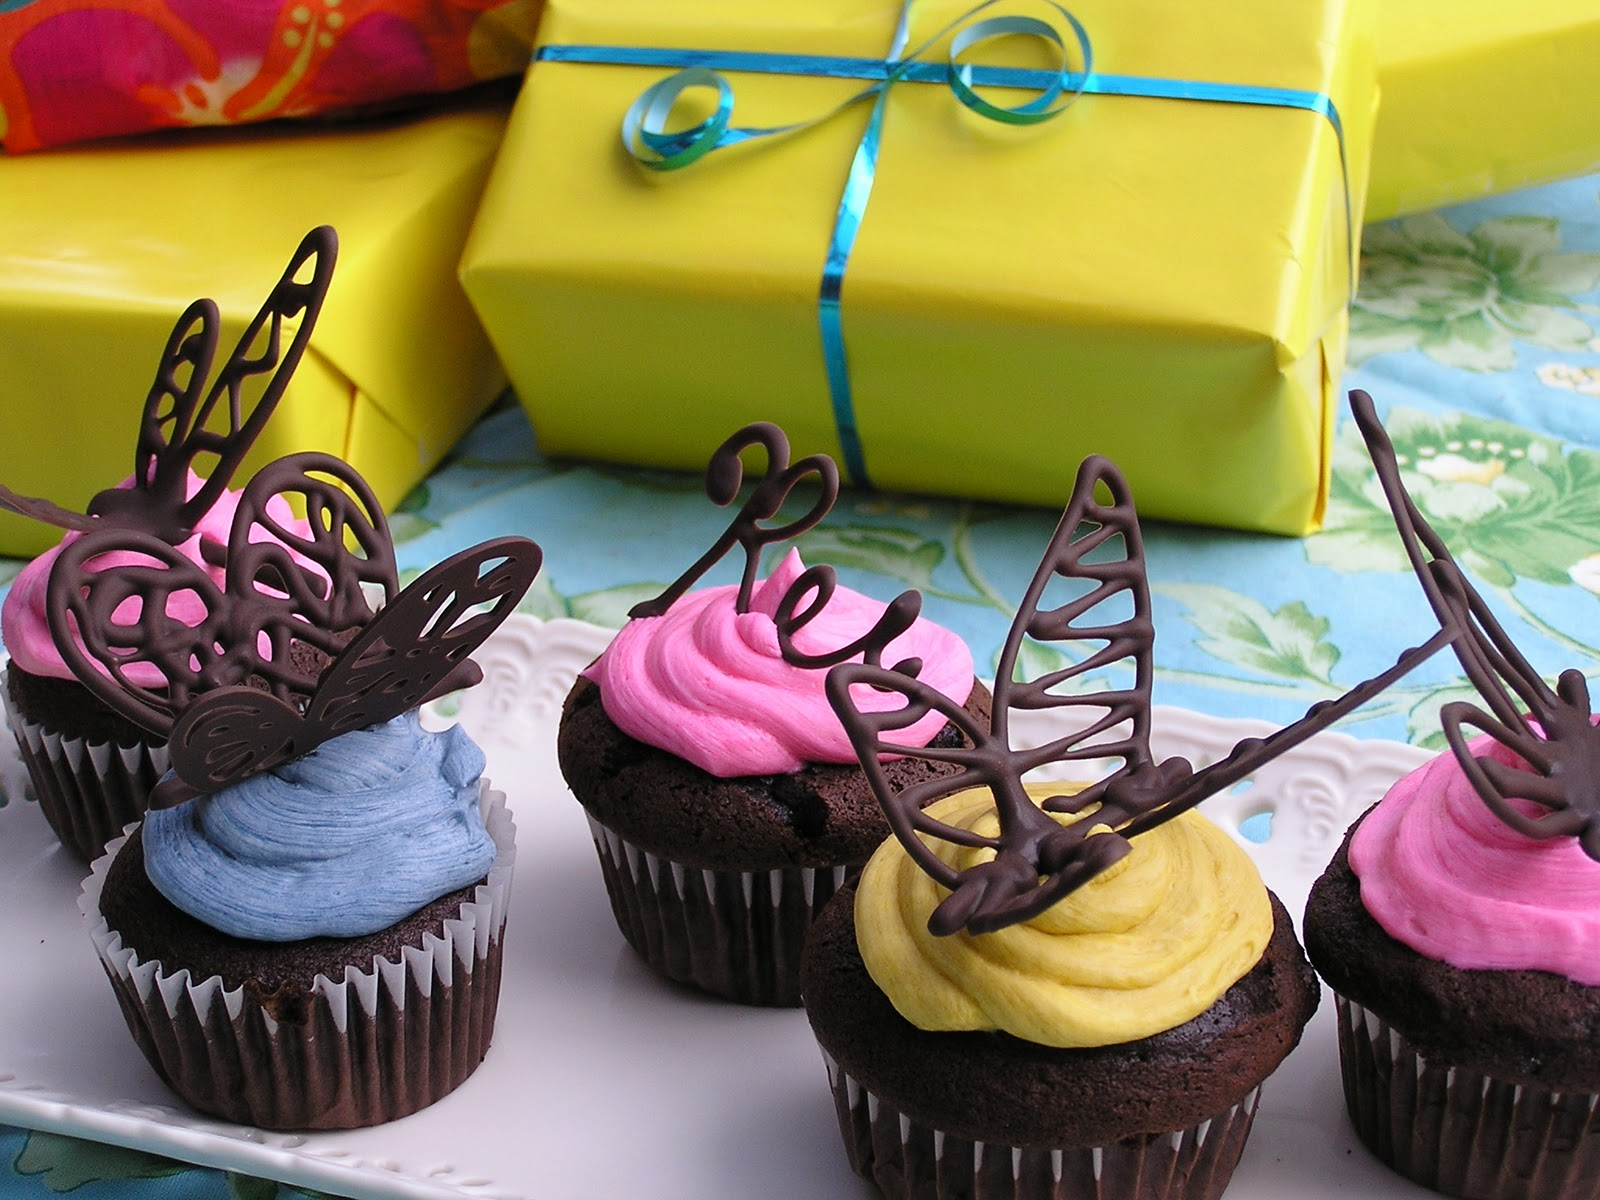 Cake Decorations For Cupcakes : Everything Old: How To: Make Chocolate Butterfly Cake ...